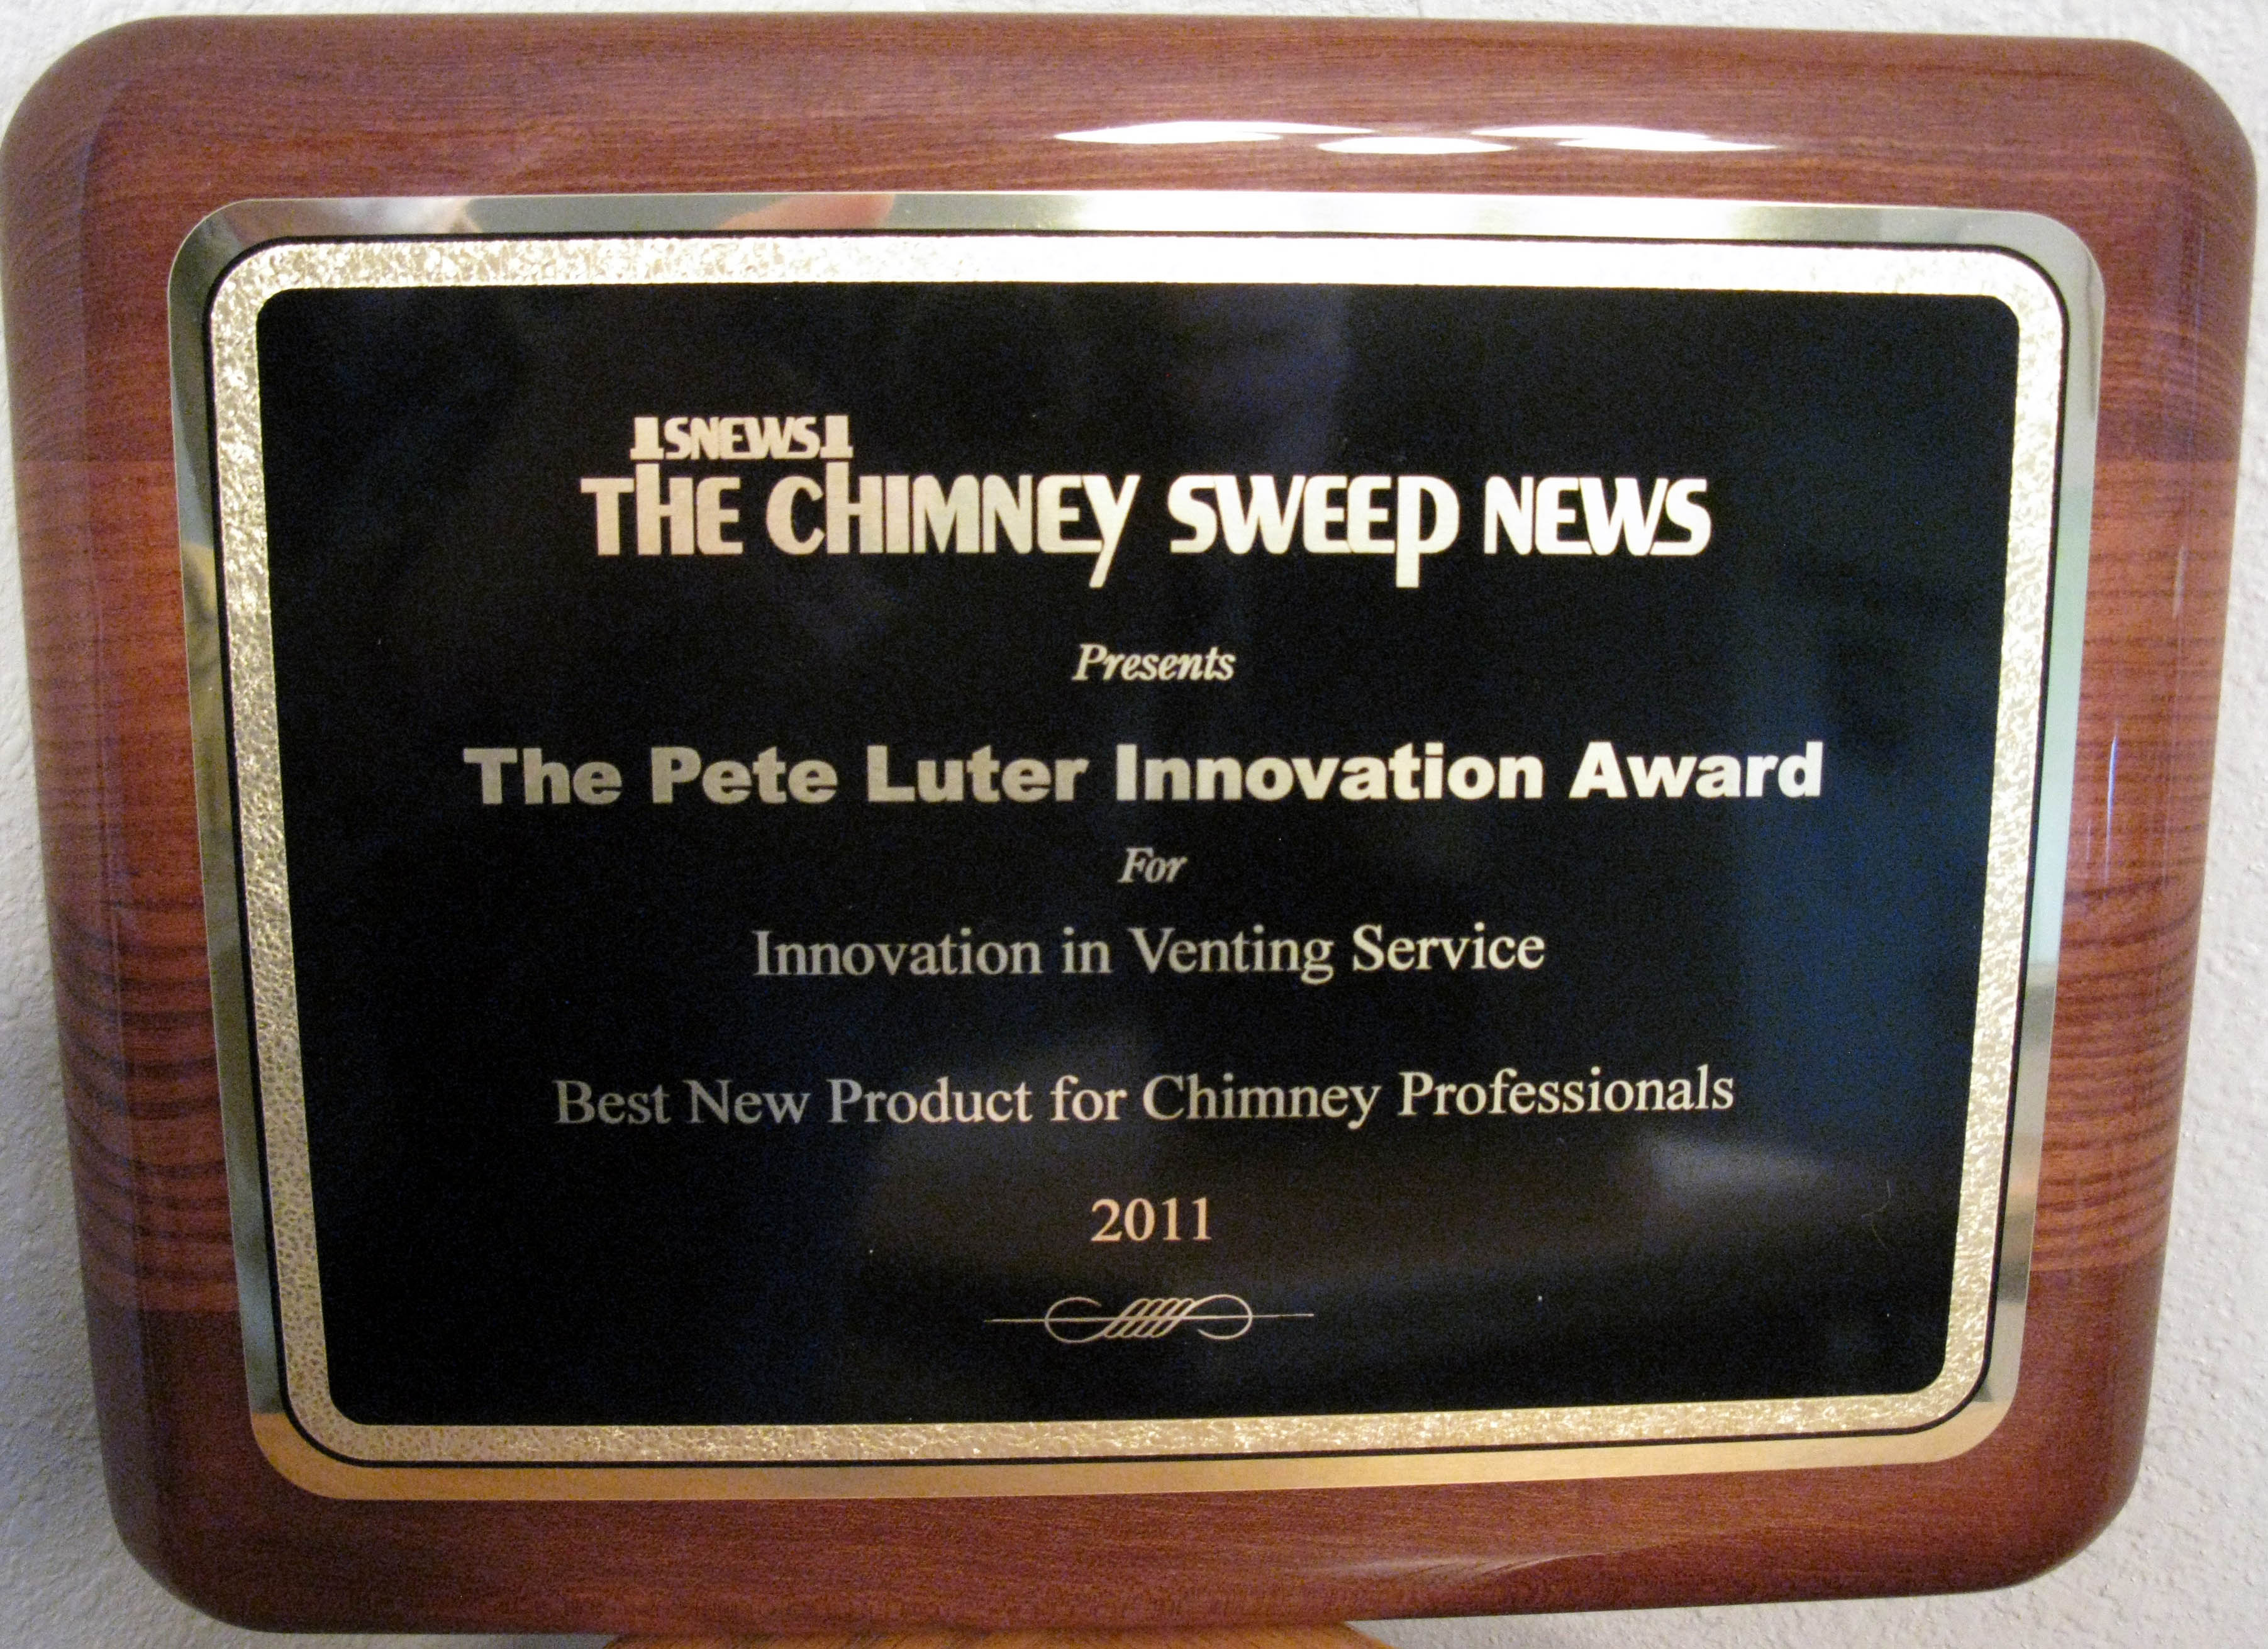 The Pete Luter Innovation Awards Sponsored By The Chimney